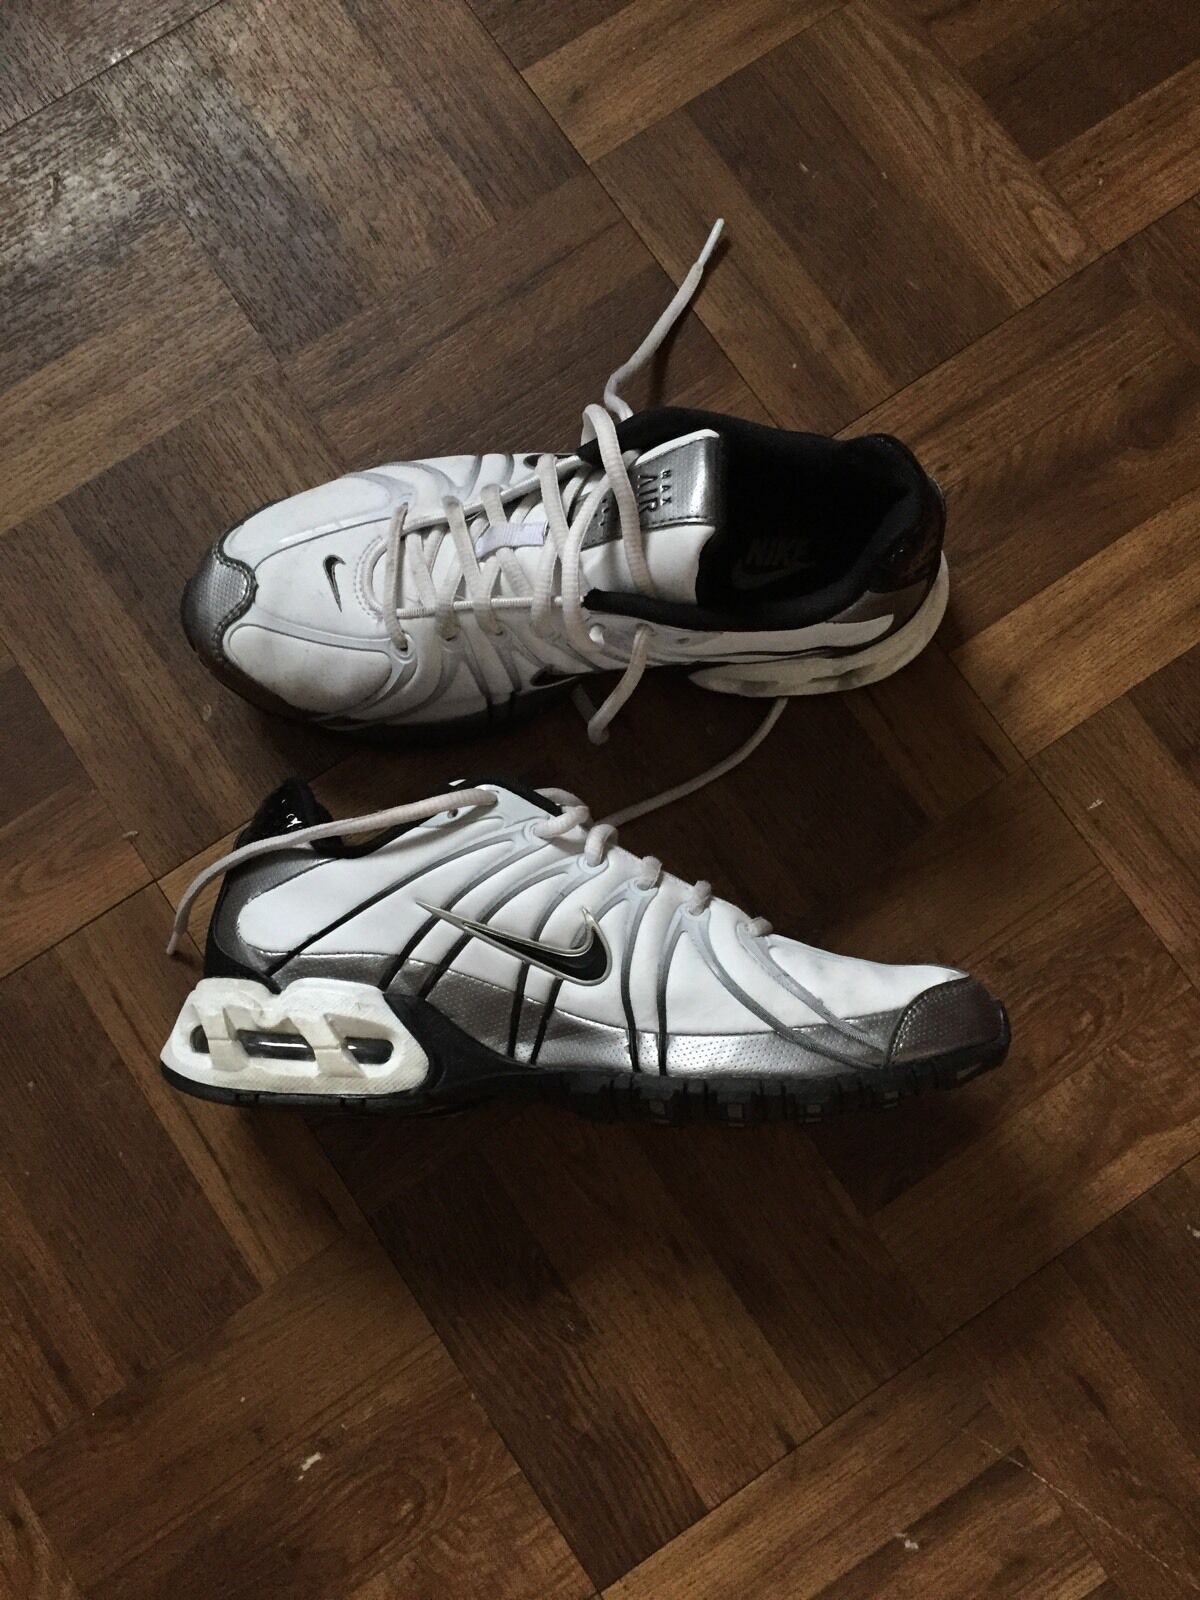 Nike Sneakers 7.5 Men's  Cheap and fashionable